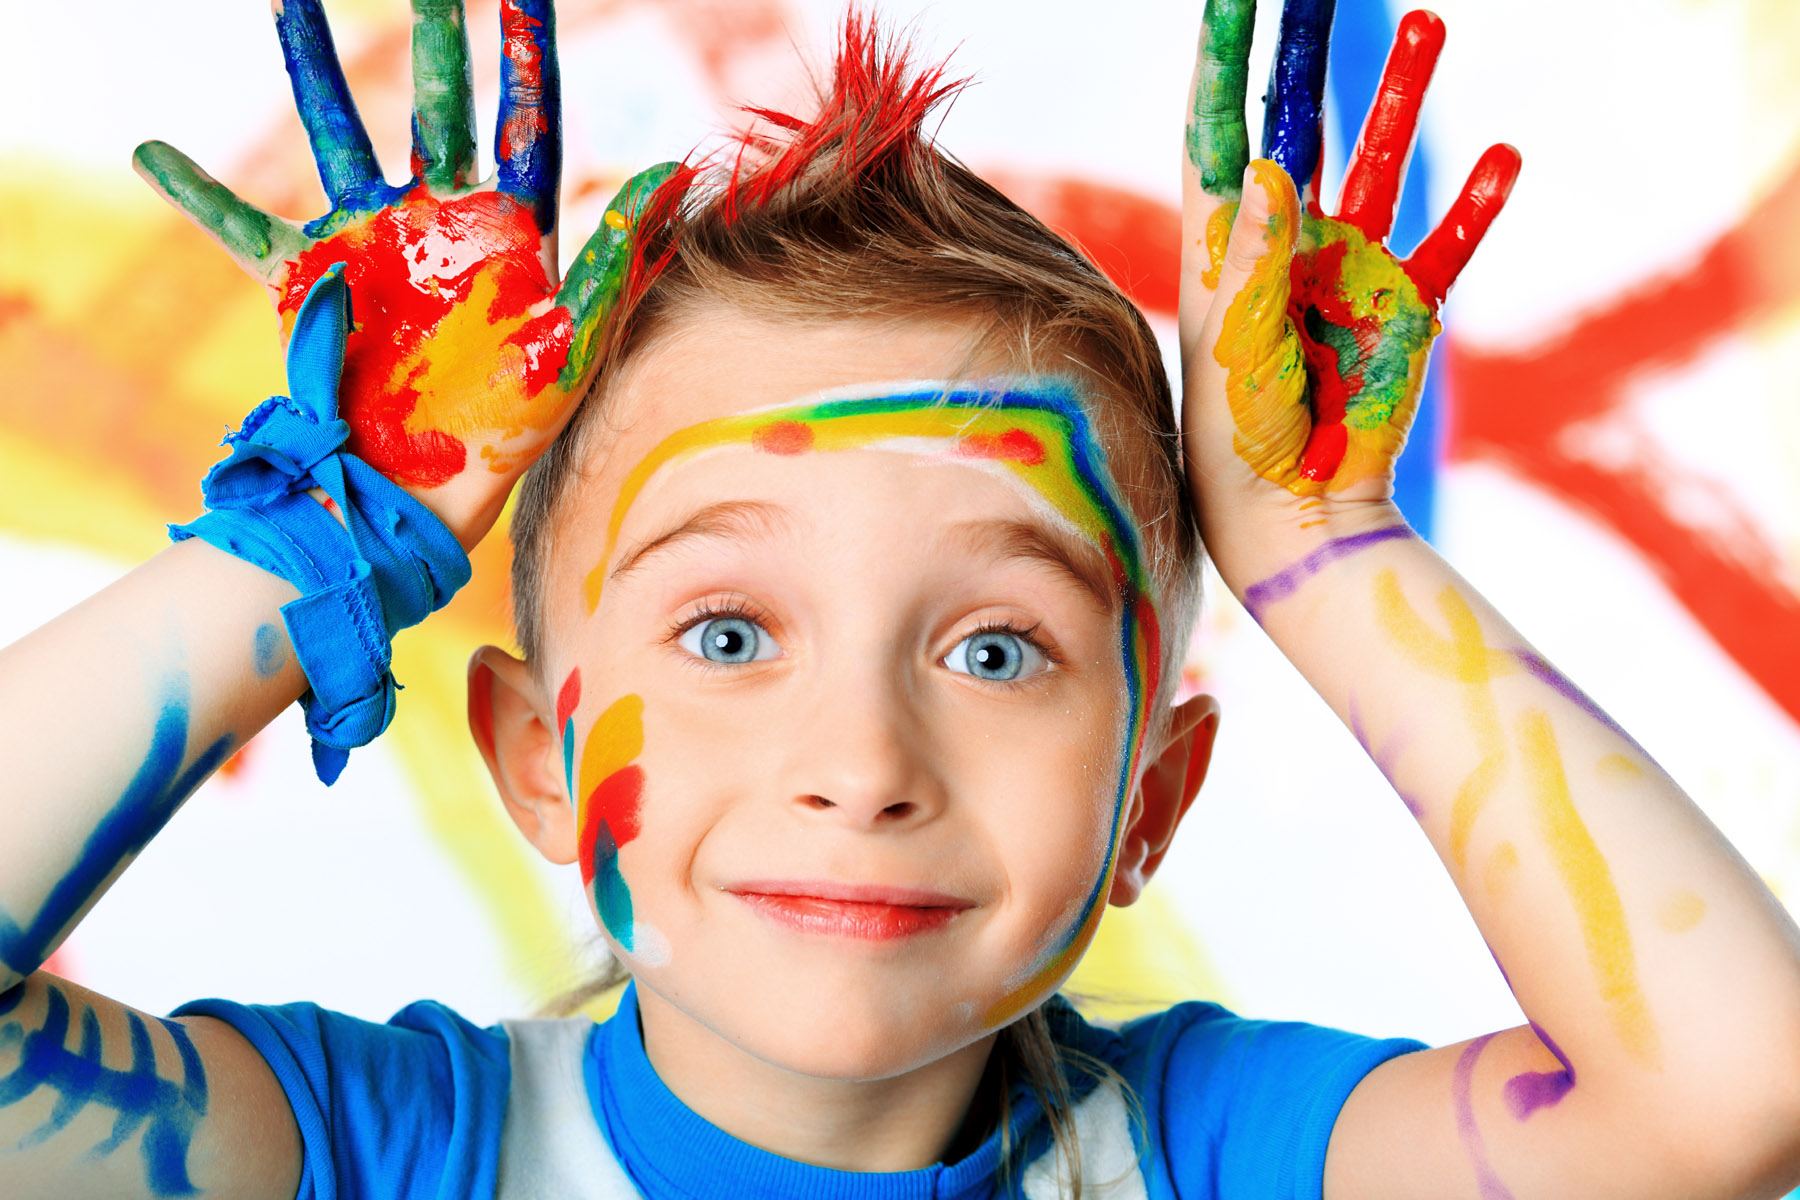 PNG HD Images Of Children - 126419